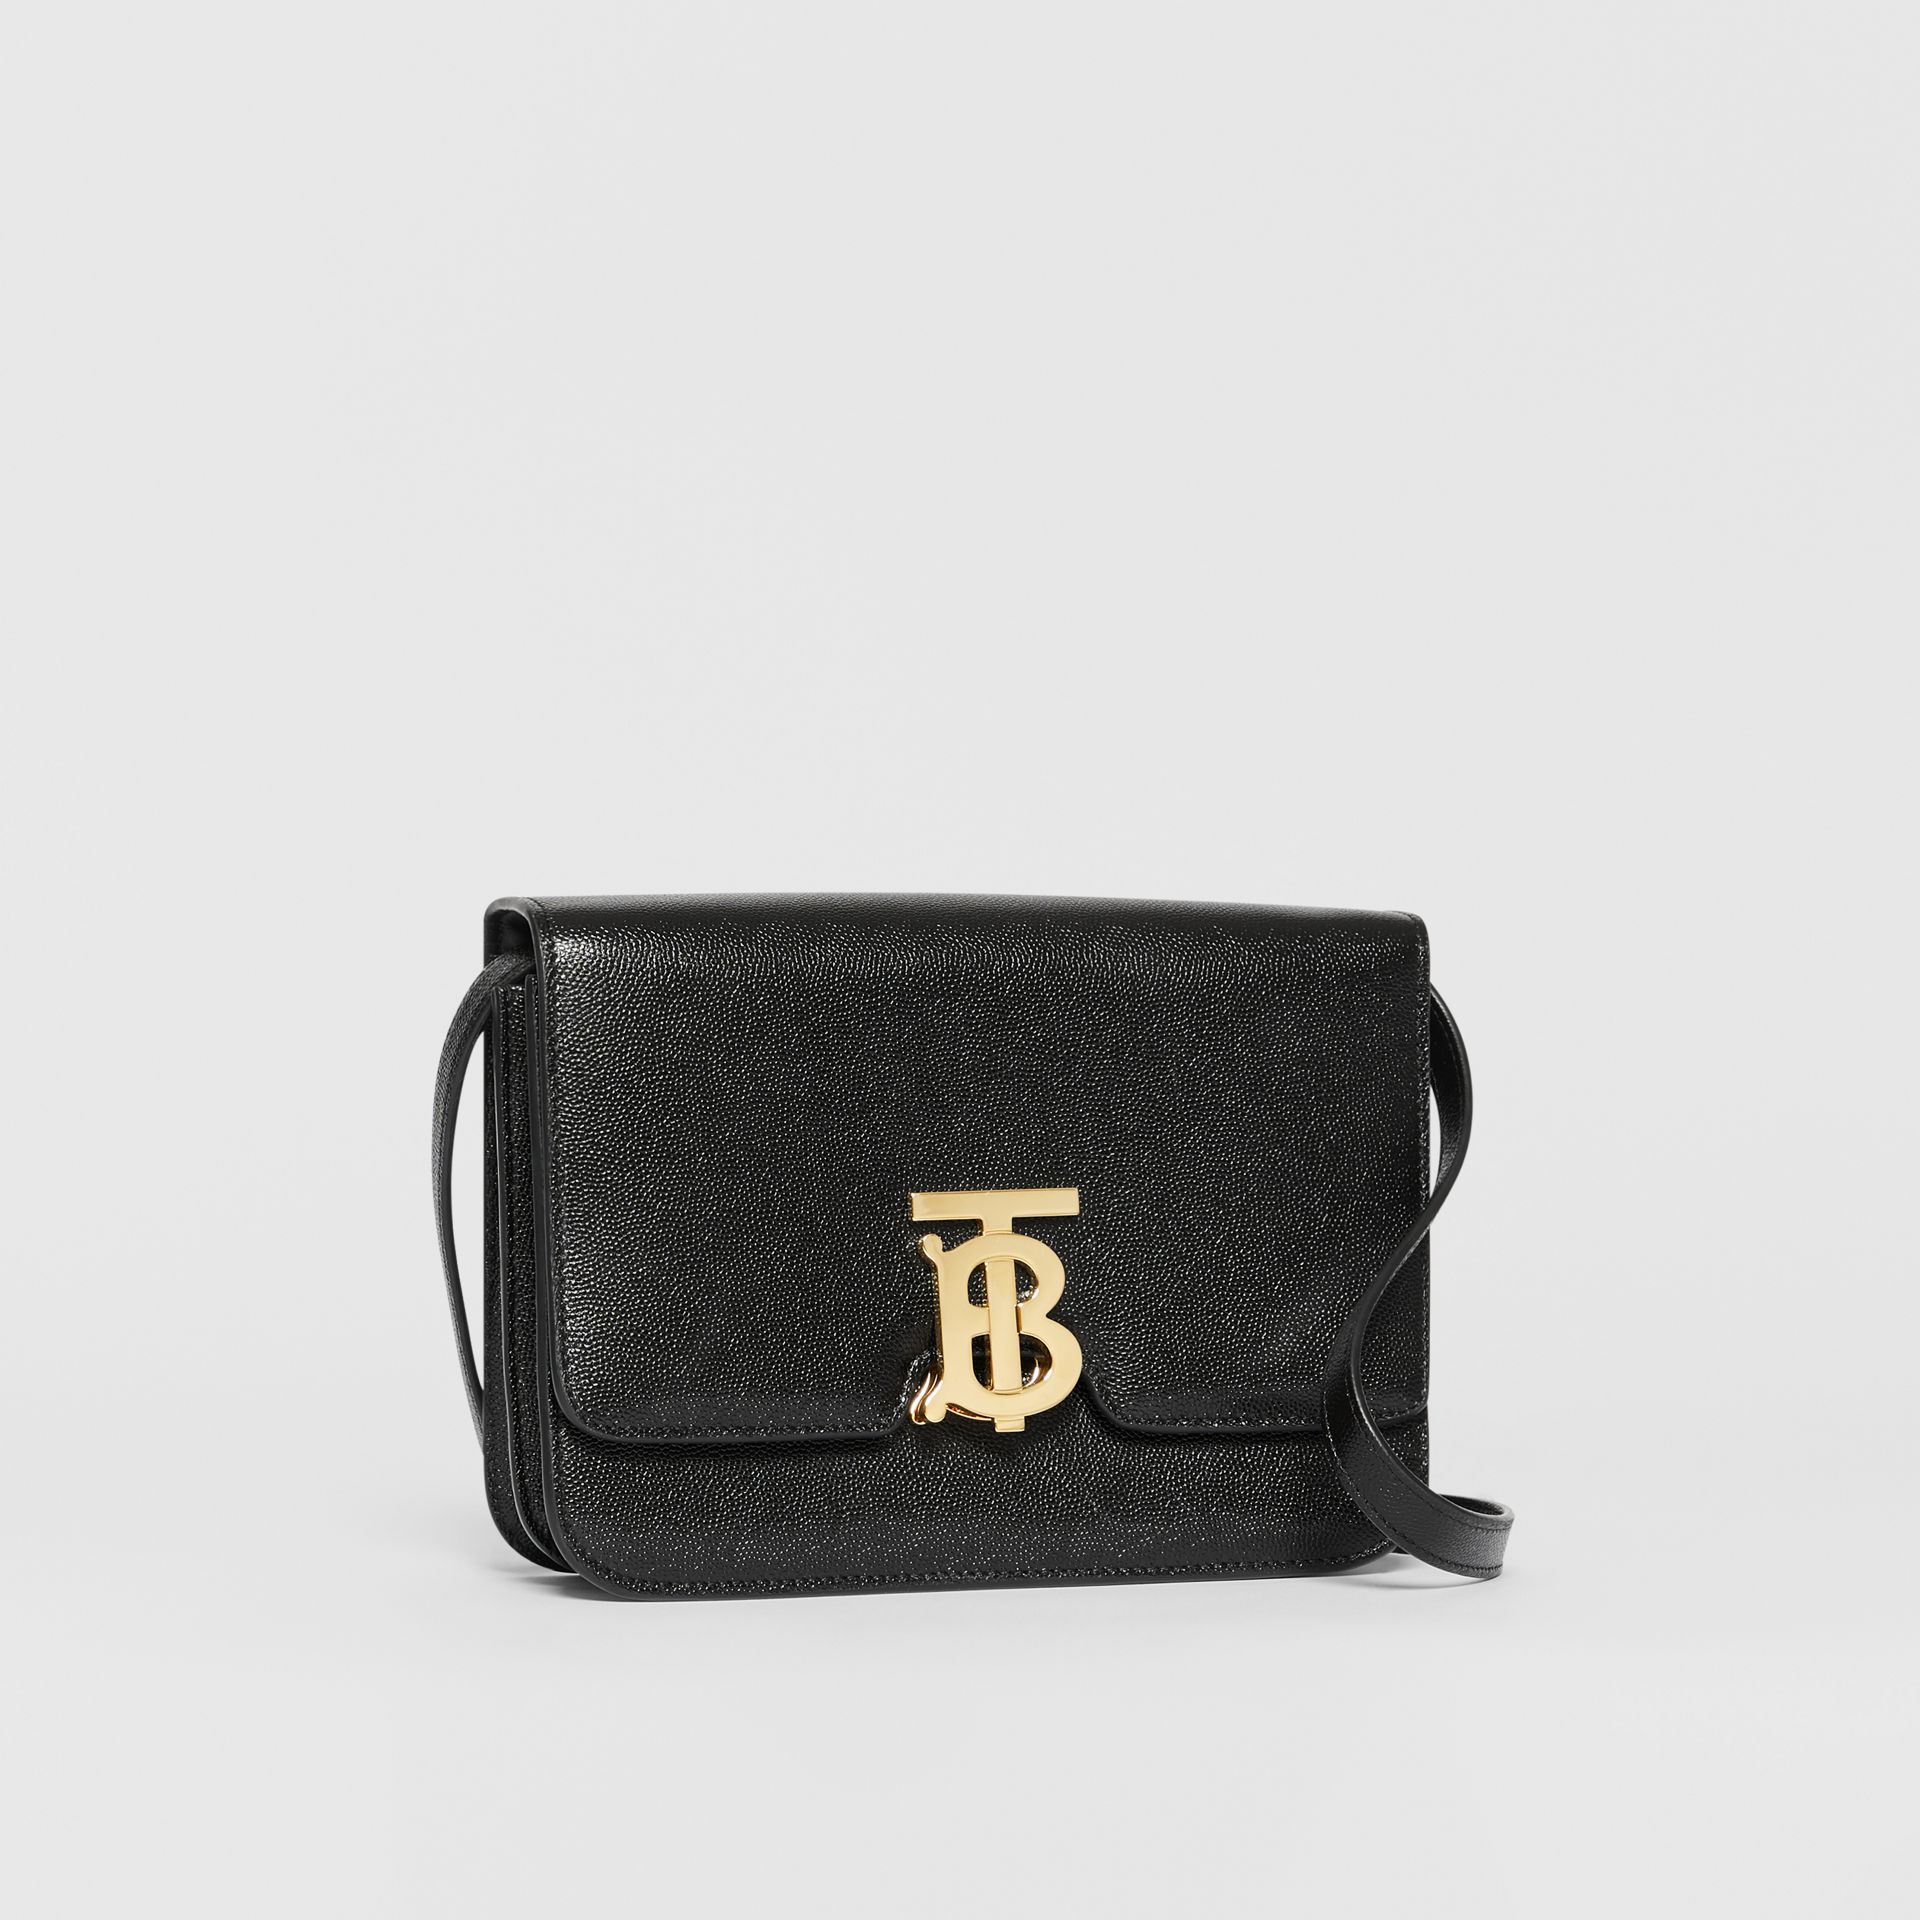 Small Grainy Leather TB Bag in Black - Women | Burberry Australia - gallery image 6